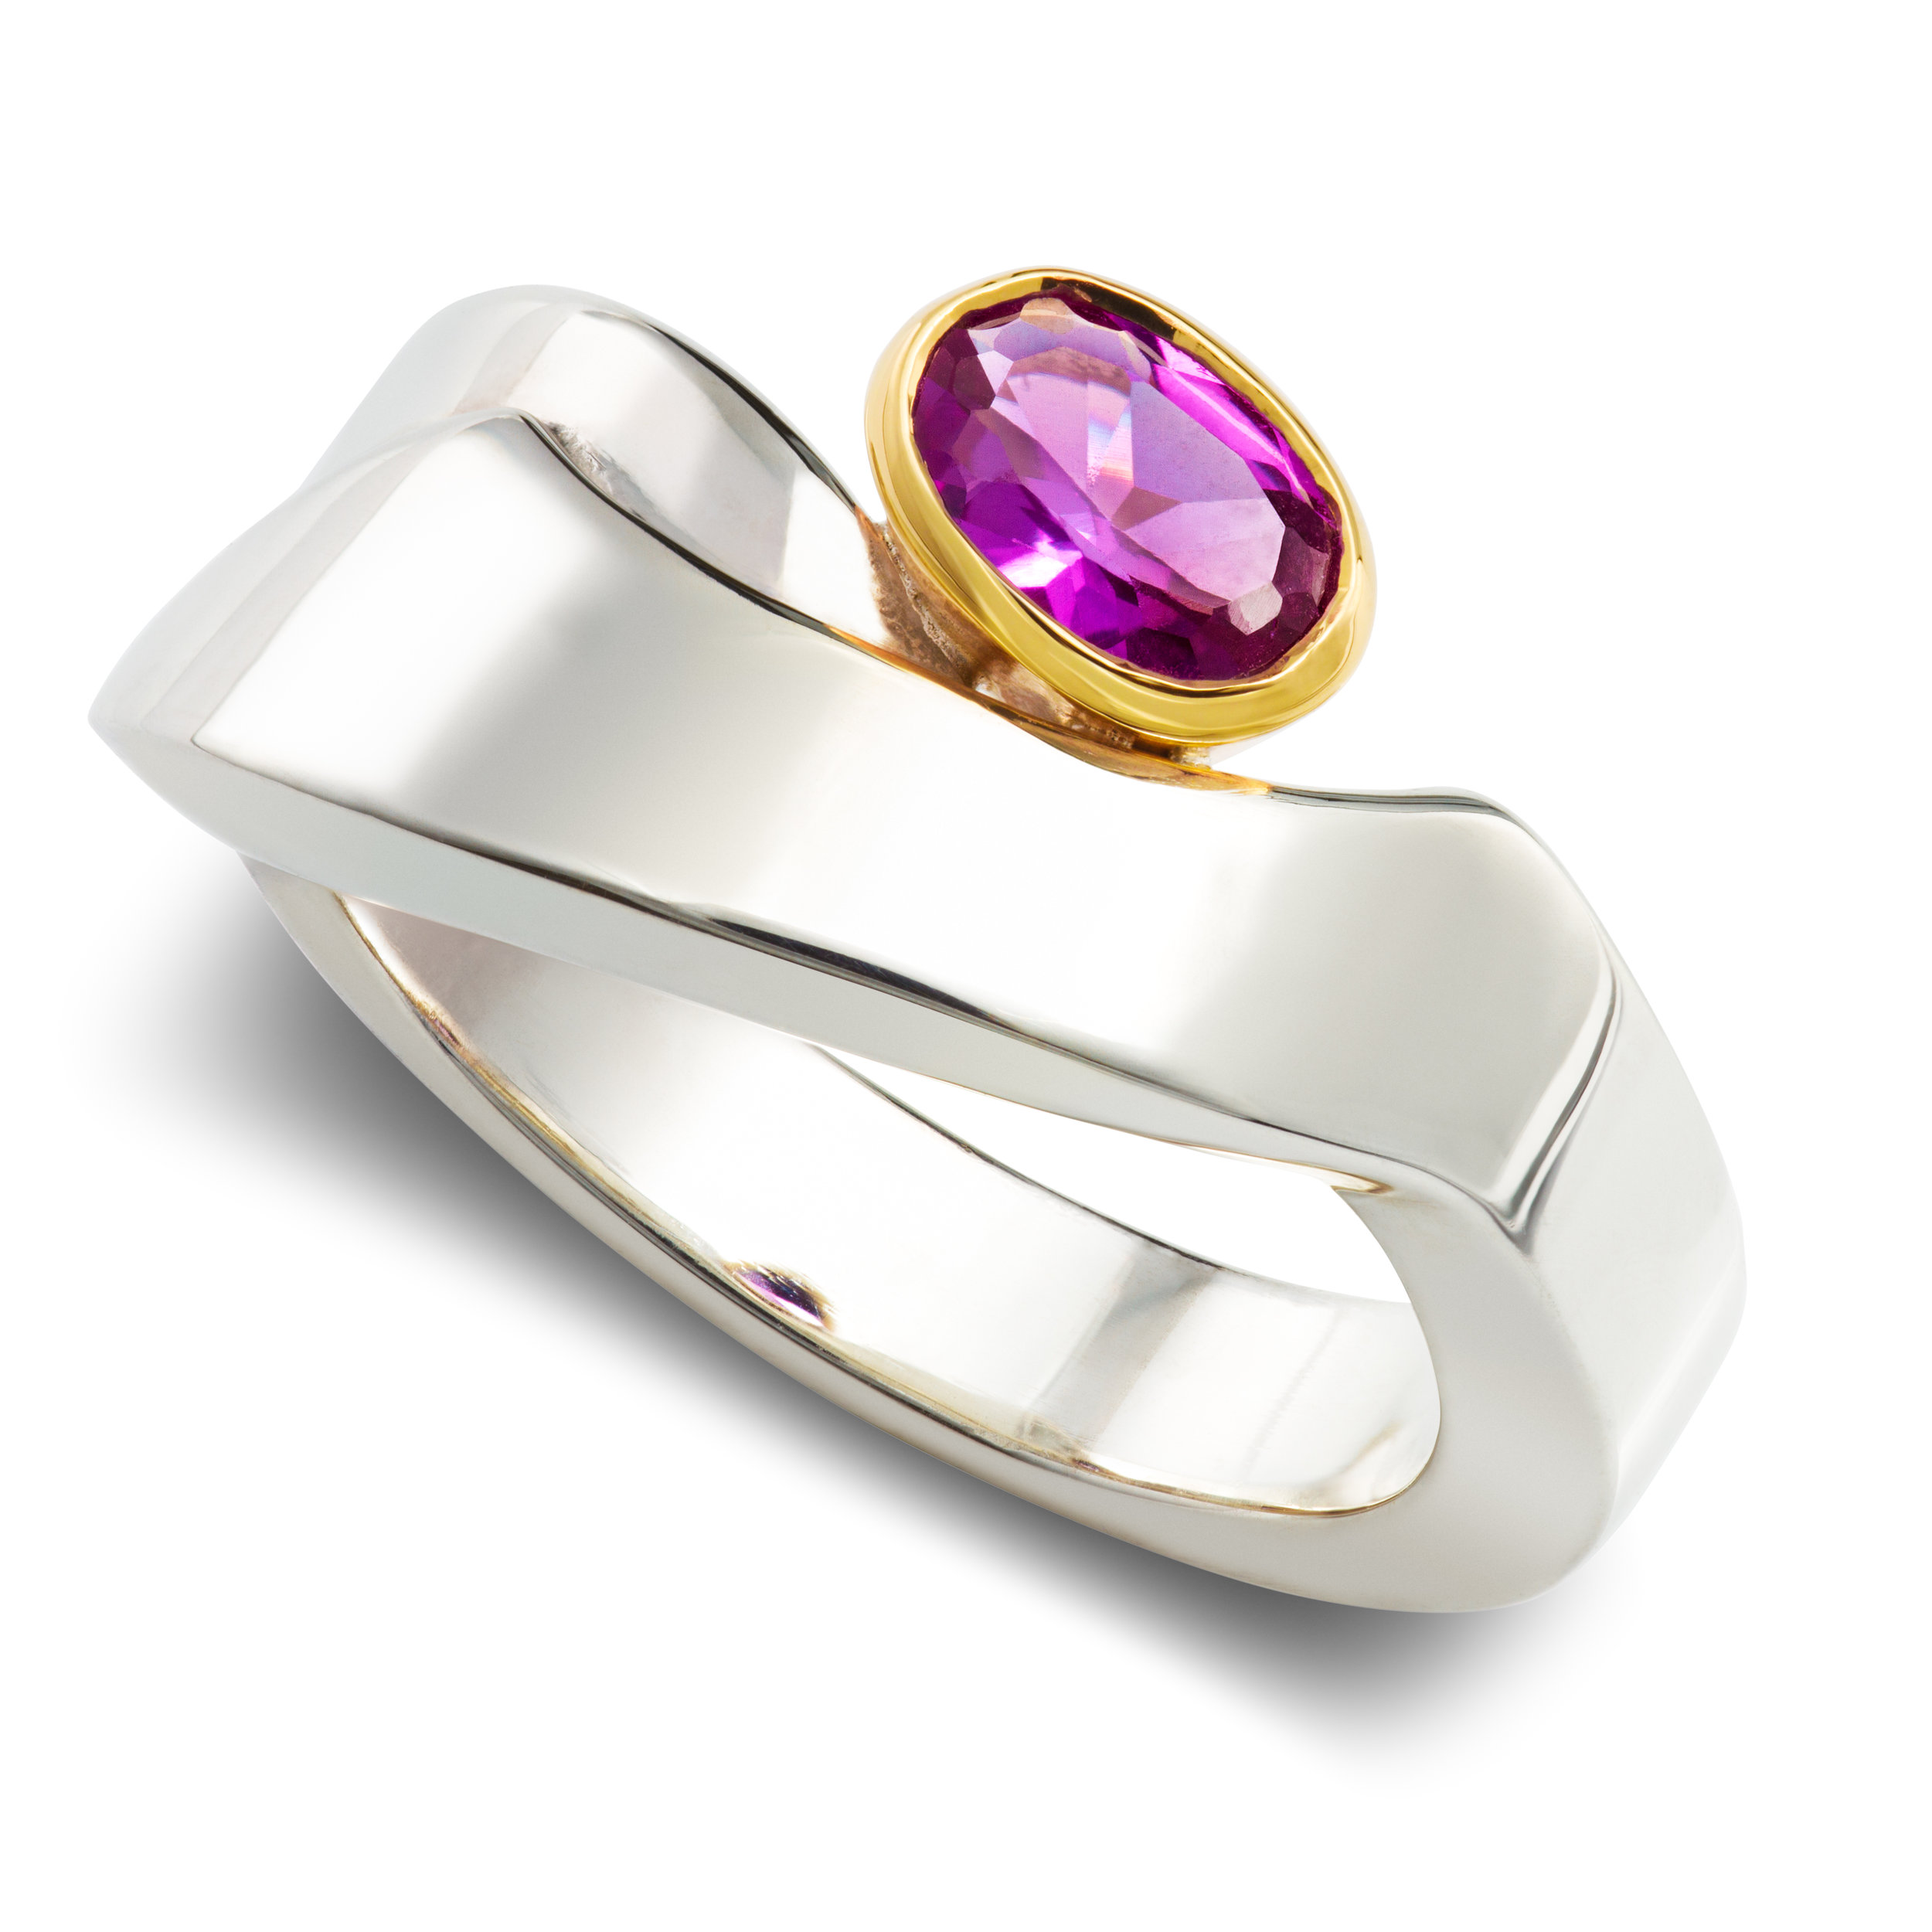 Silver dress ring set with one lab created alexandrite in a 9ct yellow gold rubover - £338